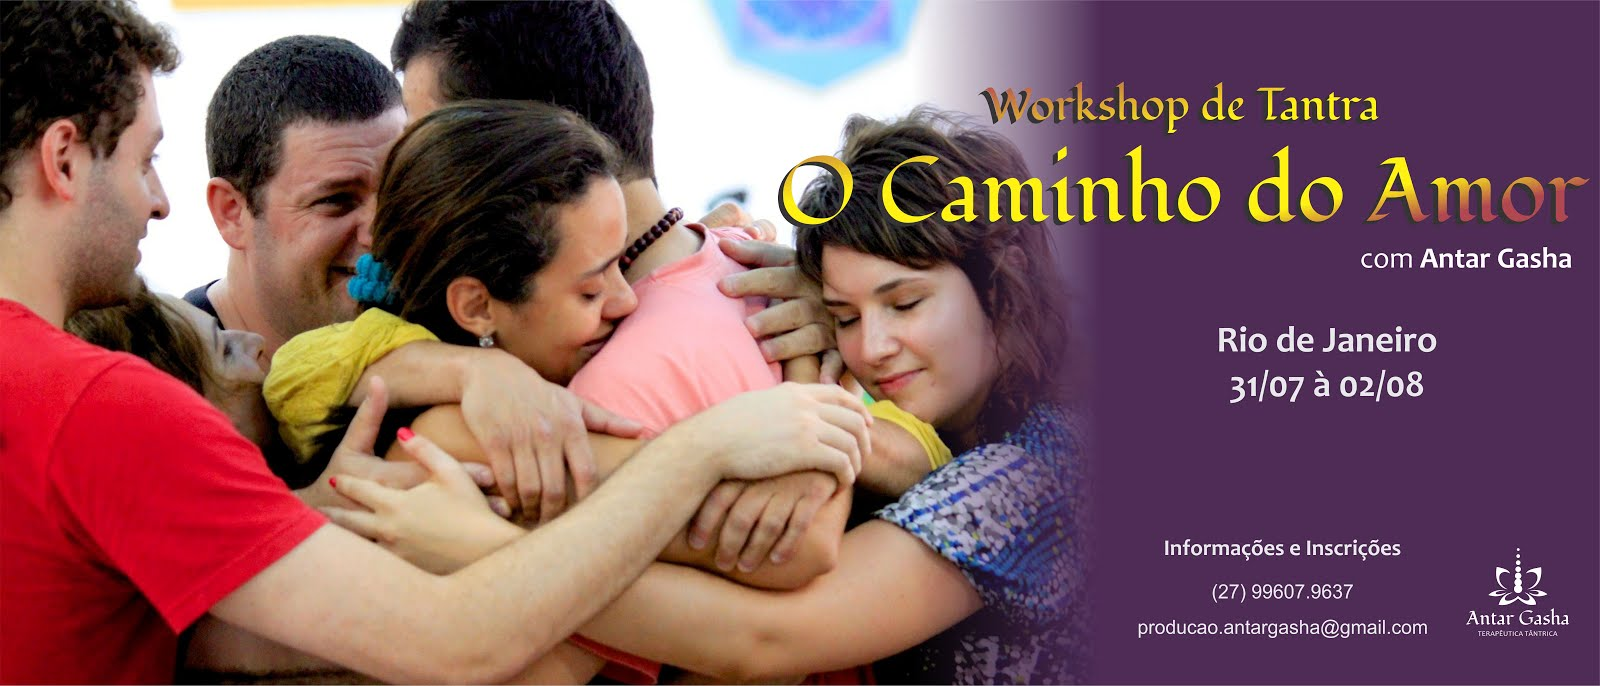 Workshop de Tantra no Rio